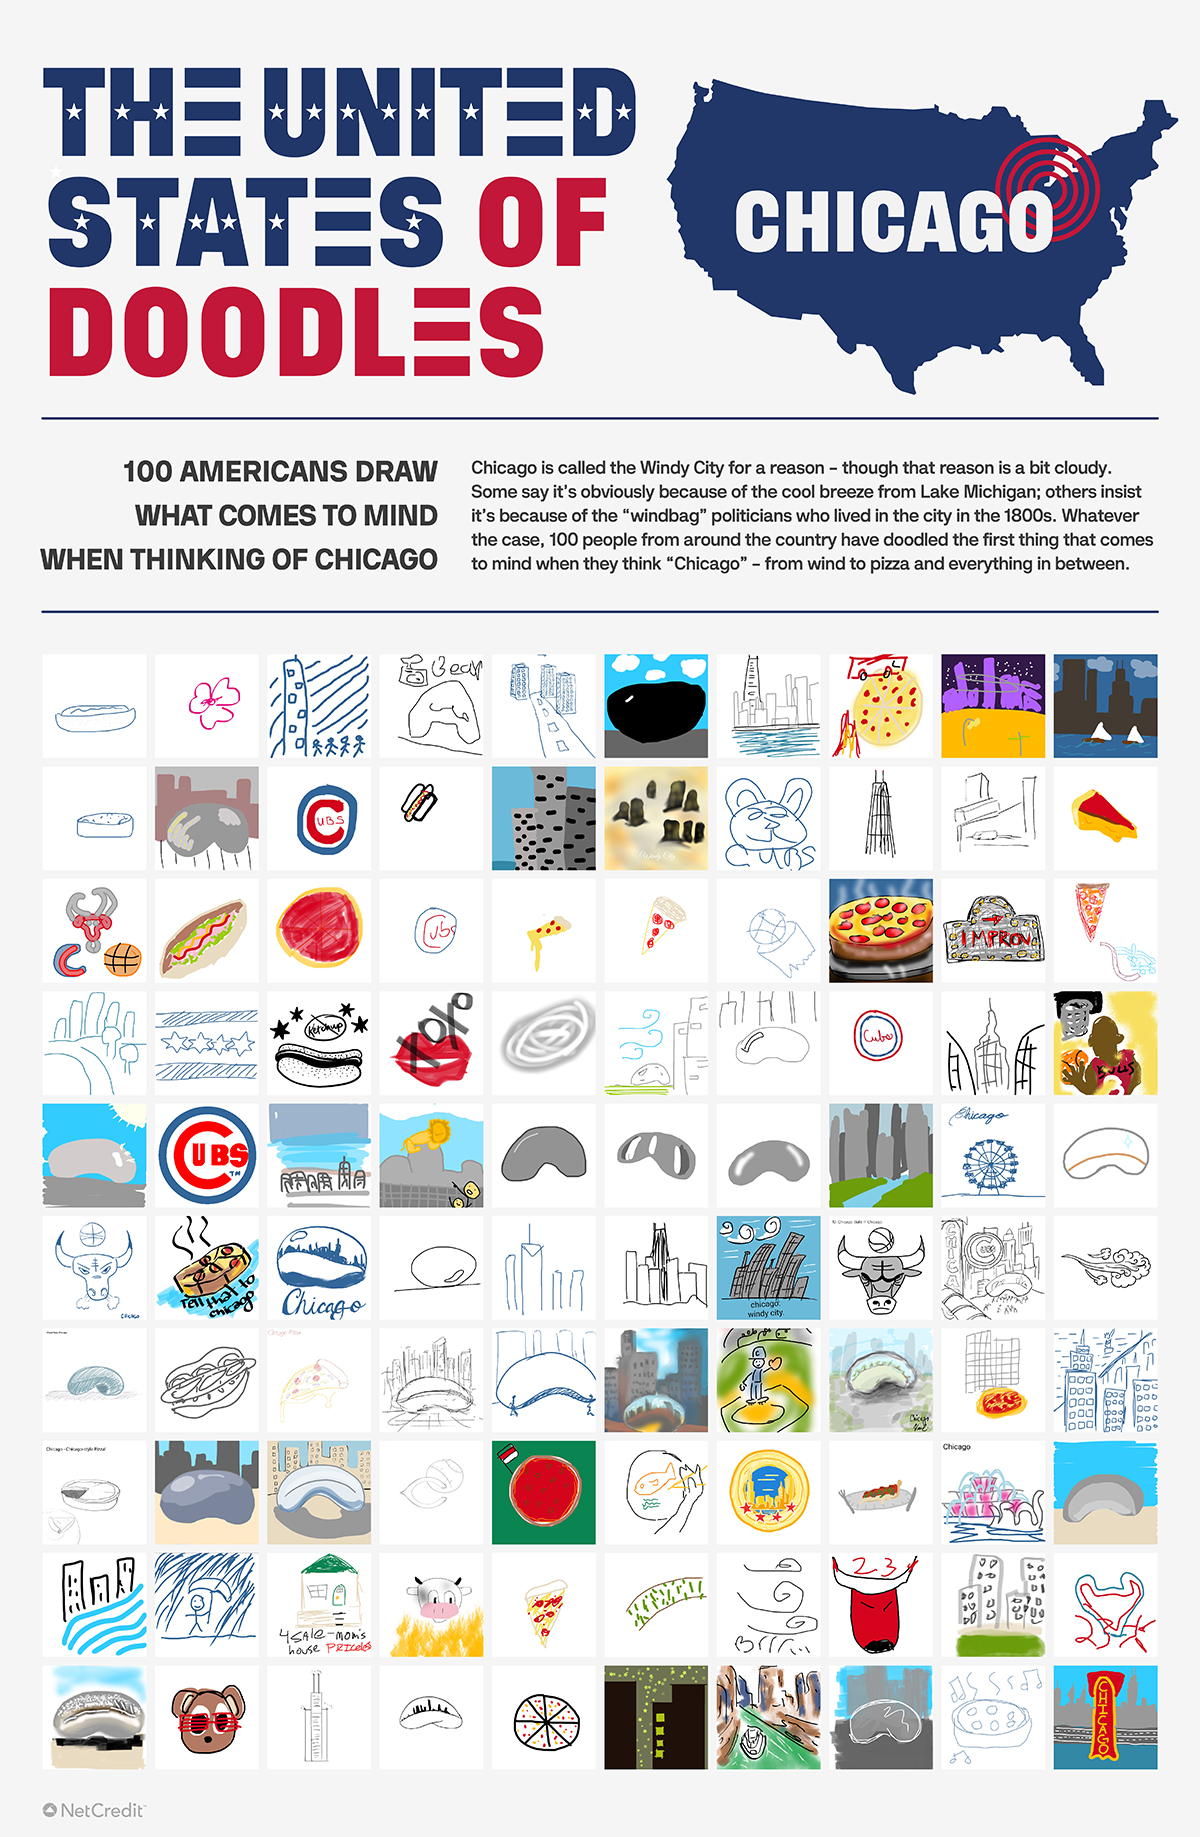 The United States of Doodles Chicago